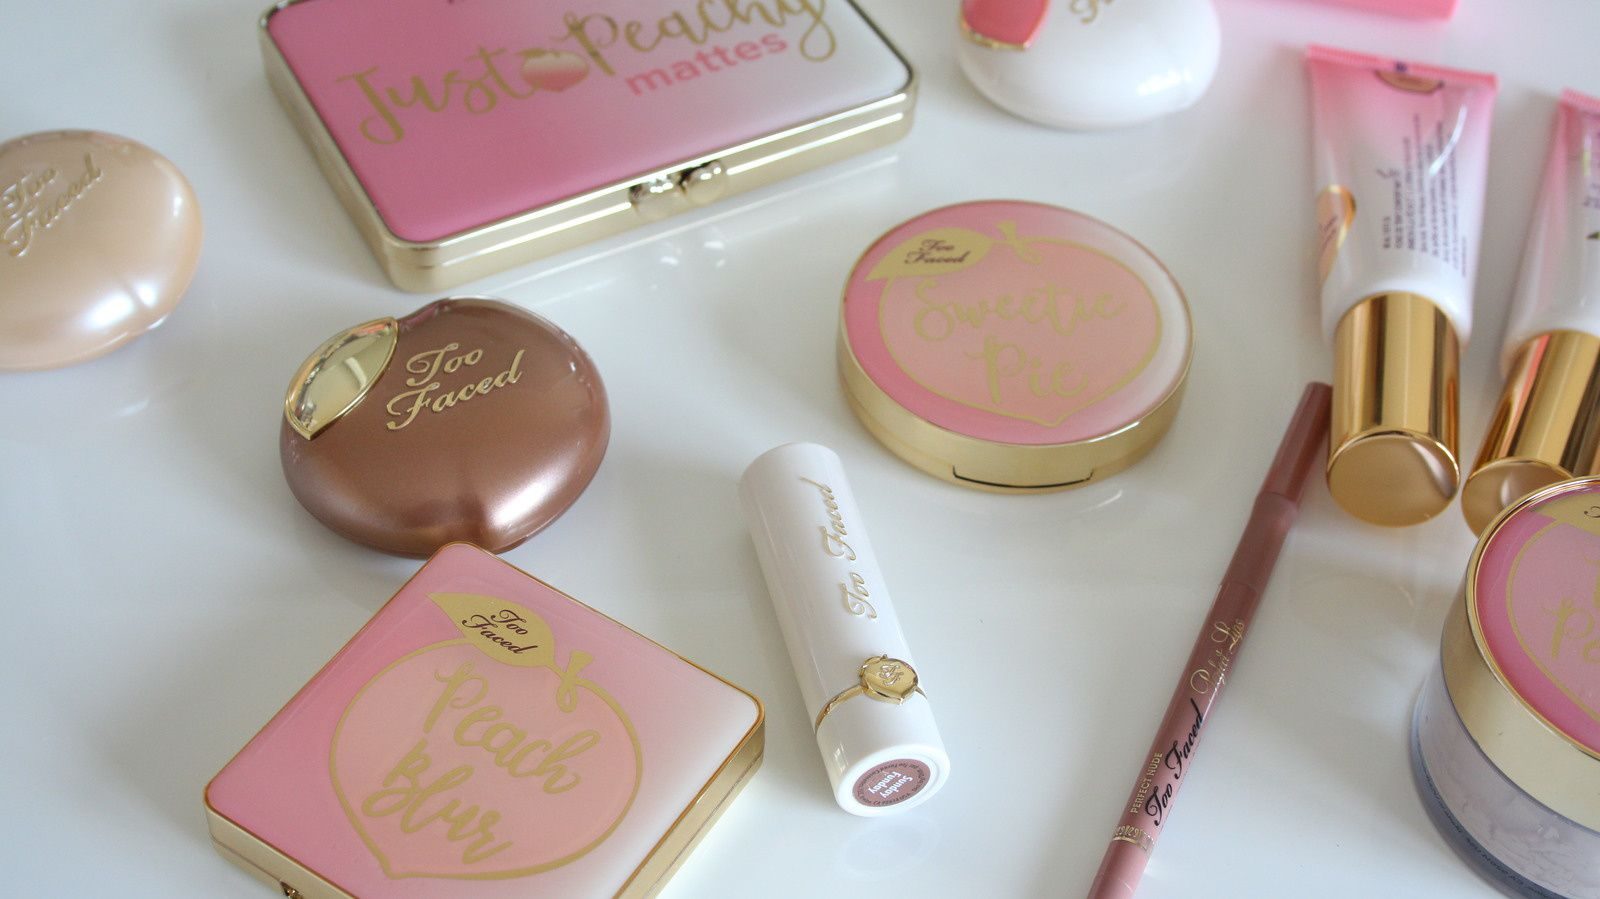 Too Faced Peaches &amp&#x3B; Cream Collection HITS &amp&#x3B; MISSES